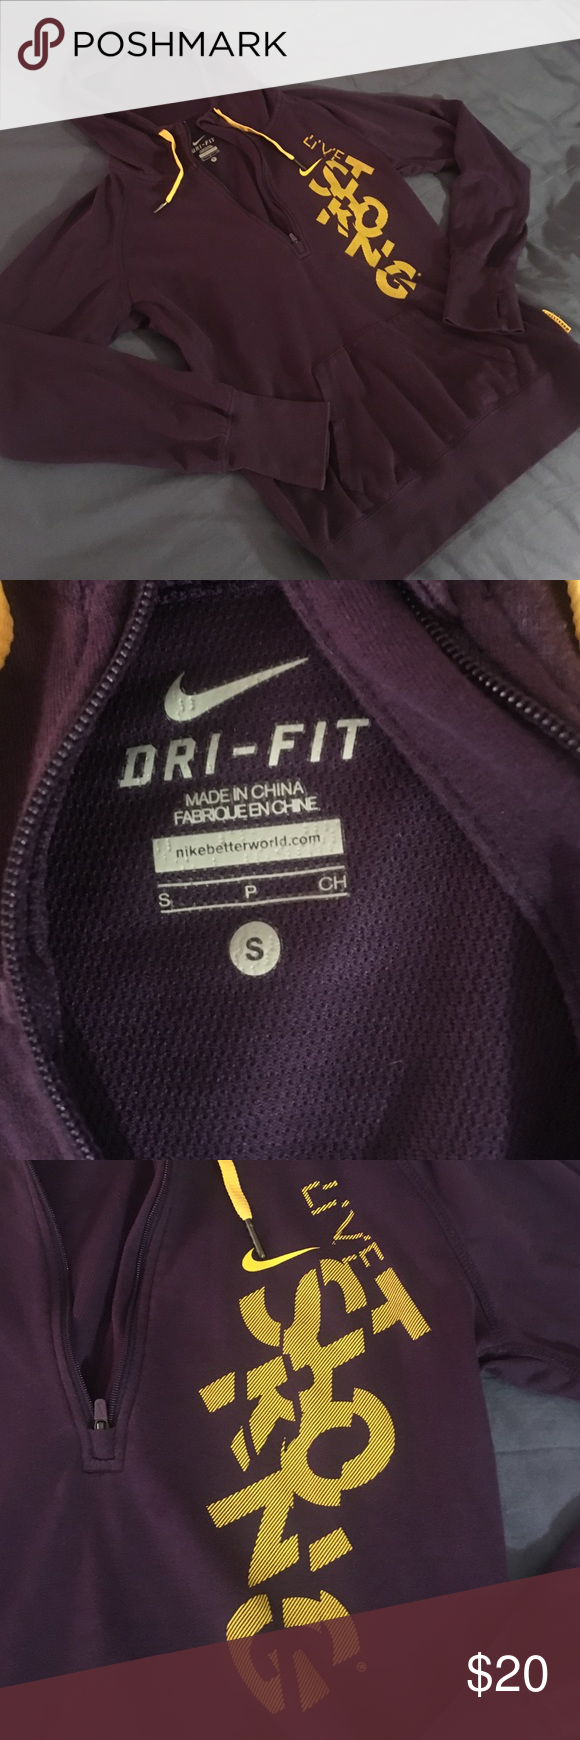 Nike livestrong half zip pullover hoodie Purple with yellow lettering in great used condition Nike Tops Sweatshirts & Hoodies